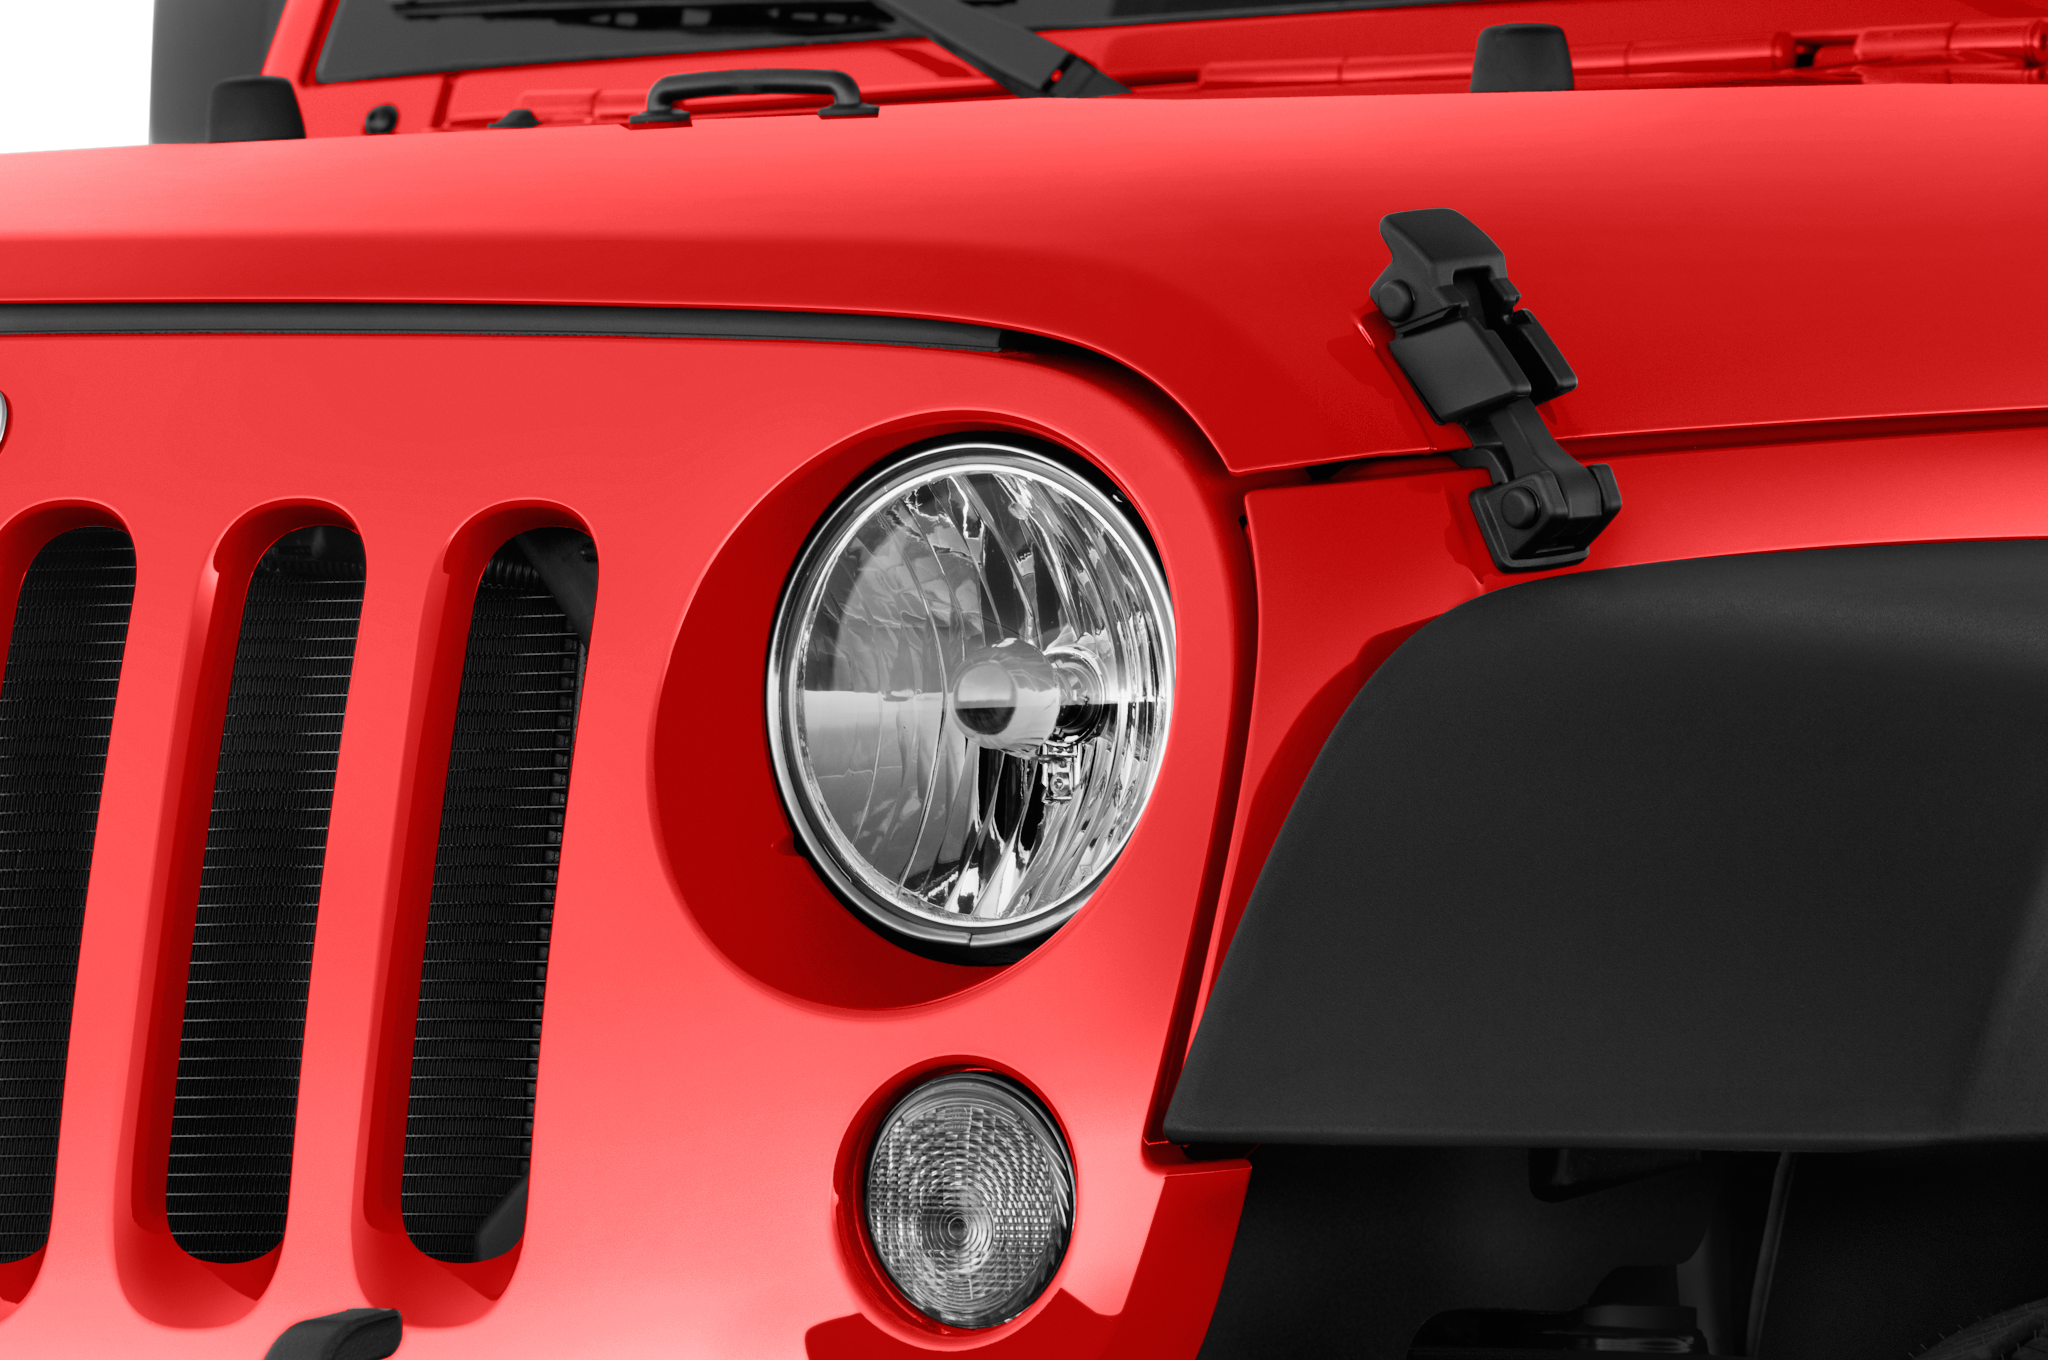 dating site reviews 2016 jeep wrangler Your jeep accessories & jeep parts source with low prices and free shipping on jeep wrangler tires of numerous great reviews on the 4wdcom jeep.